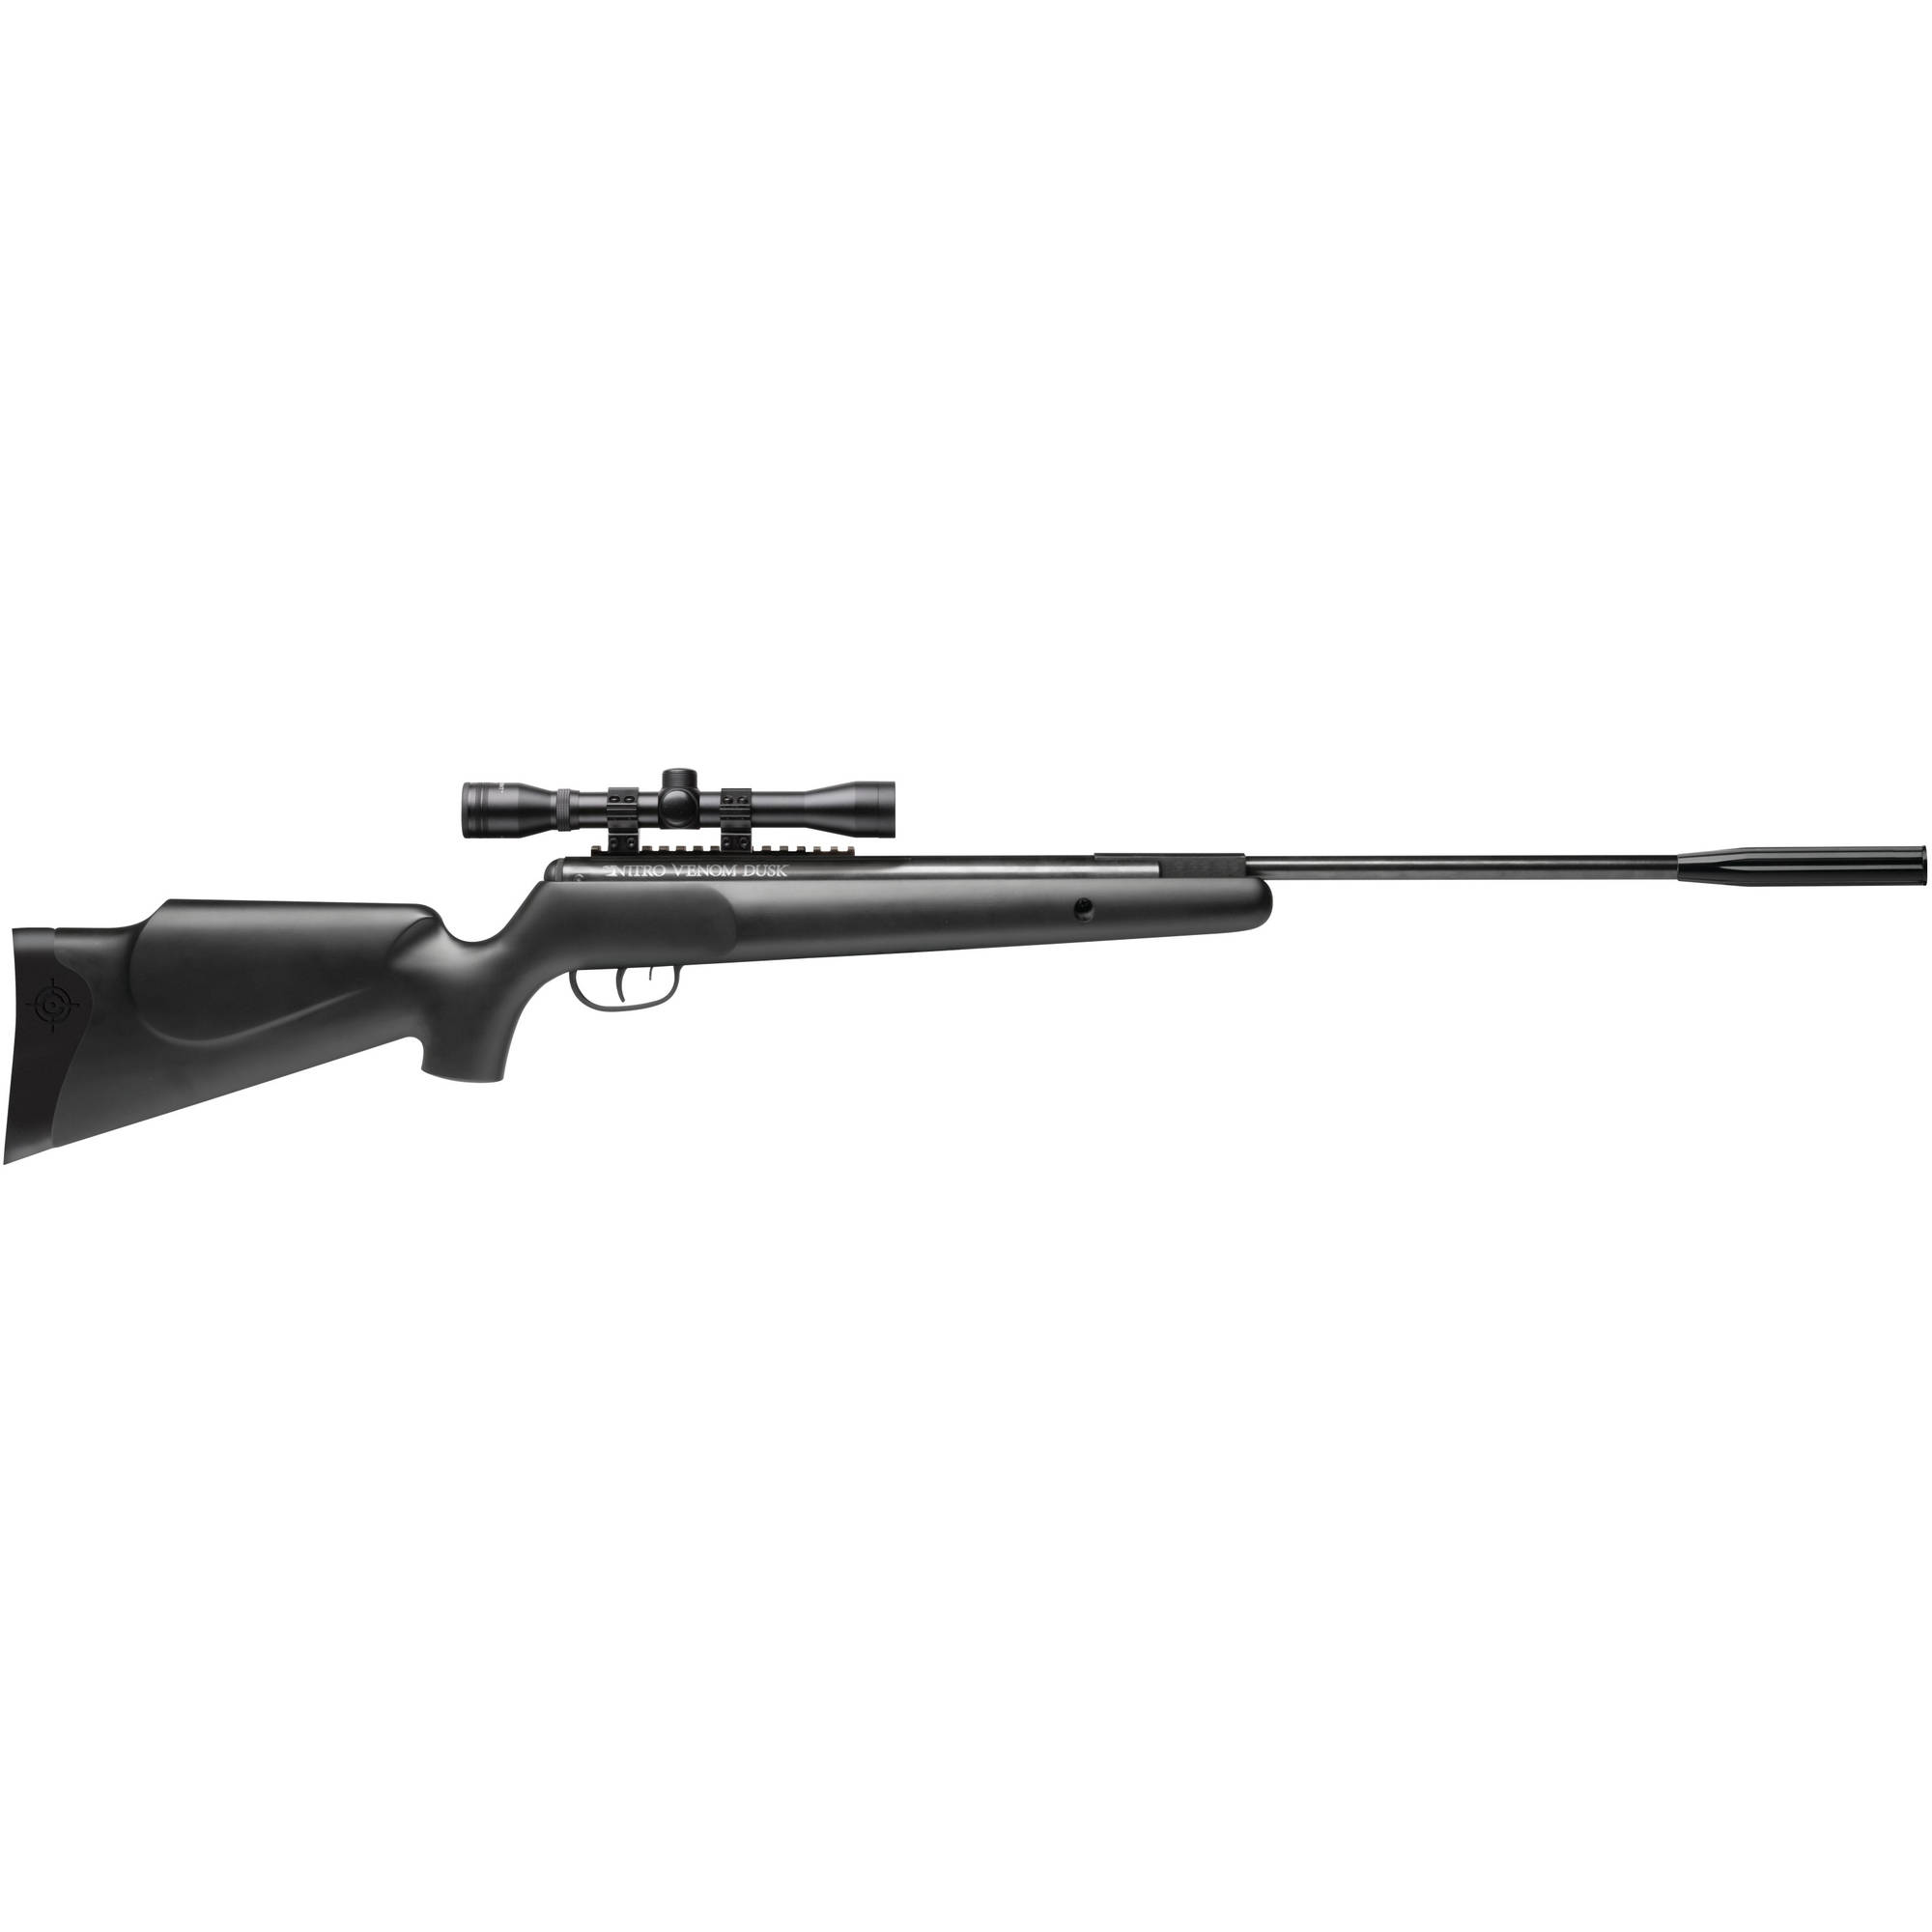 Crosman Nitro Venom Dusk NP .22 Caliber Break Barrel Air Rifle with Scope, 950fps by Crosman Corporation